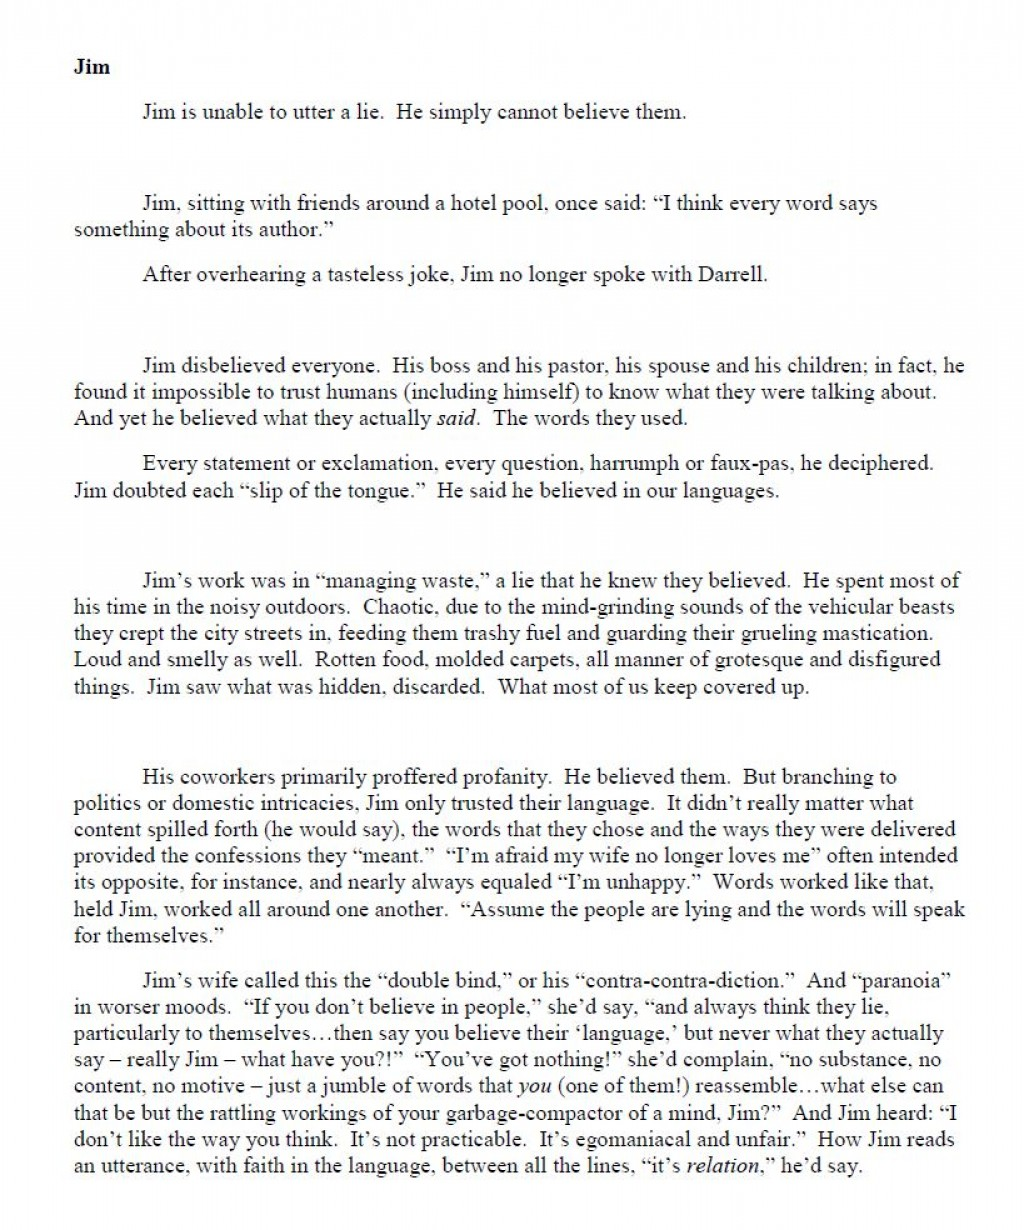 013 Childhood Essay Jim P1 Outstanding My 150 Words Ideas Examples Large